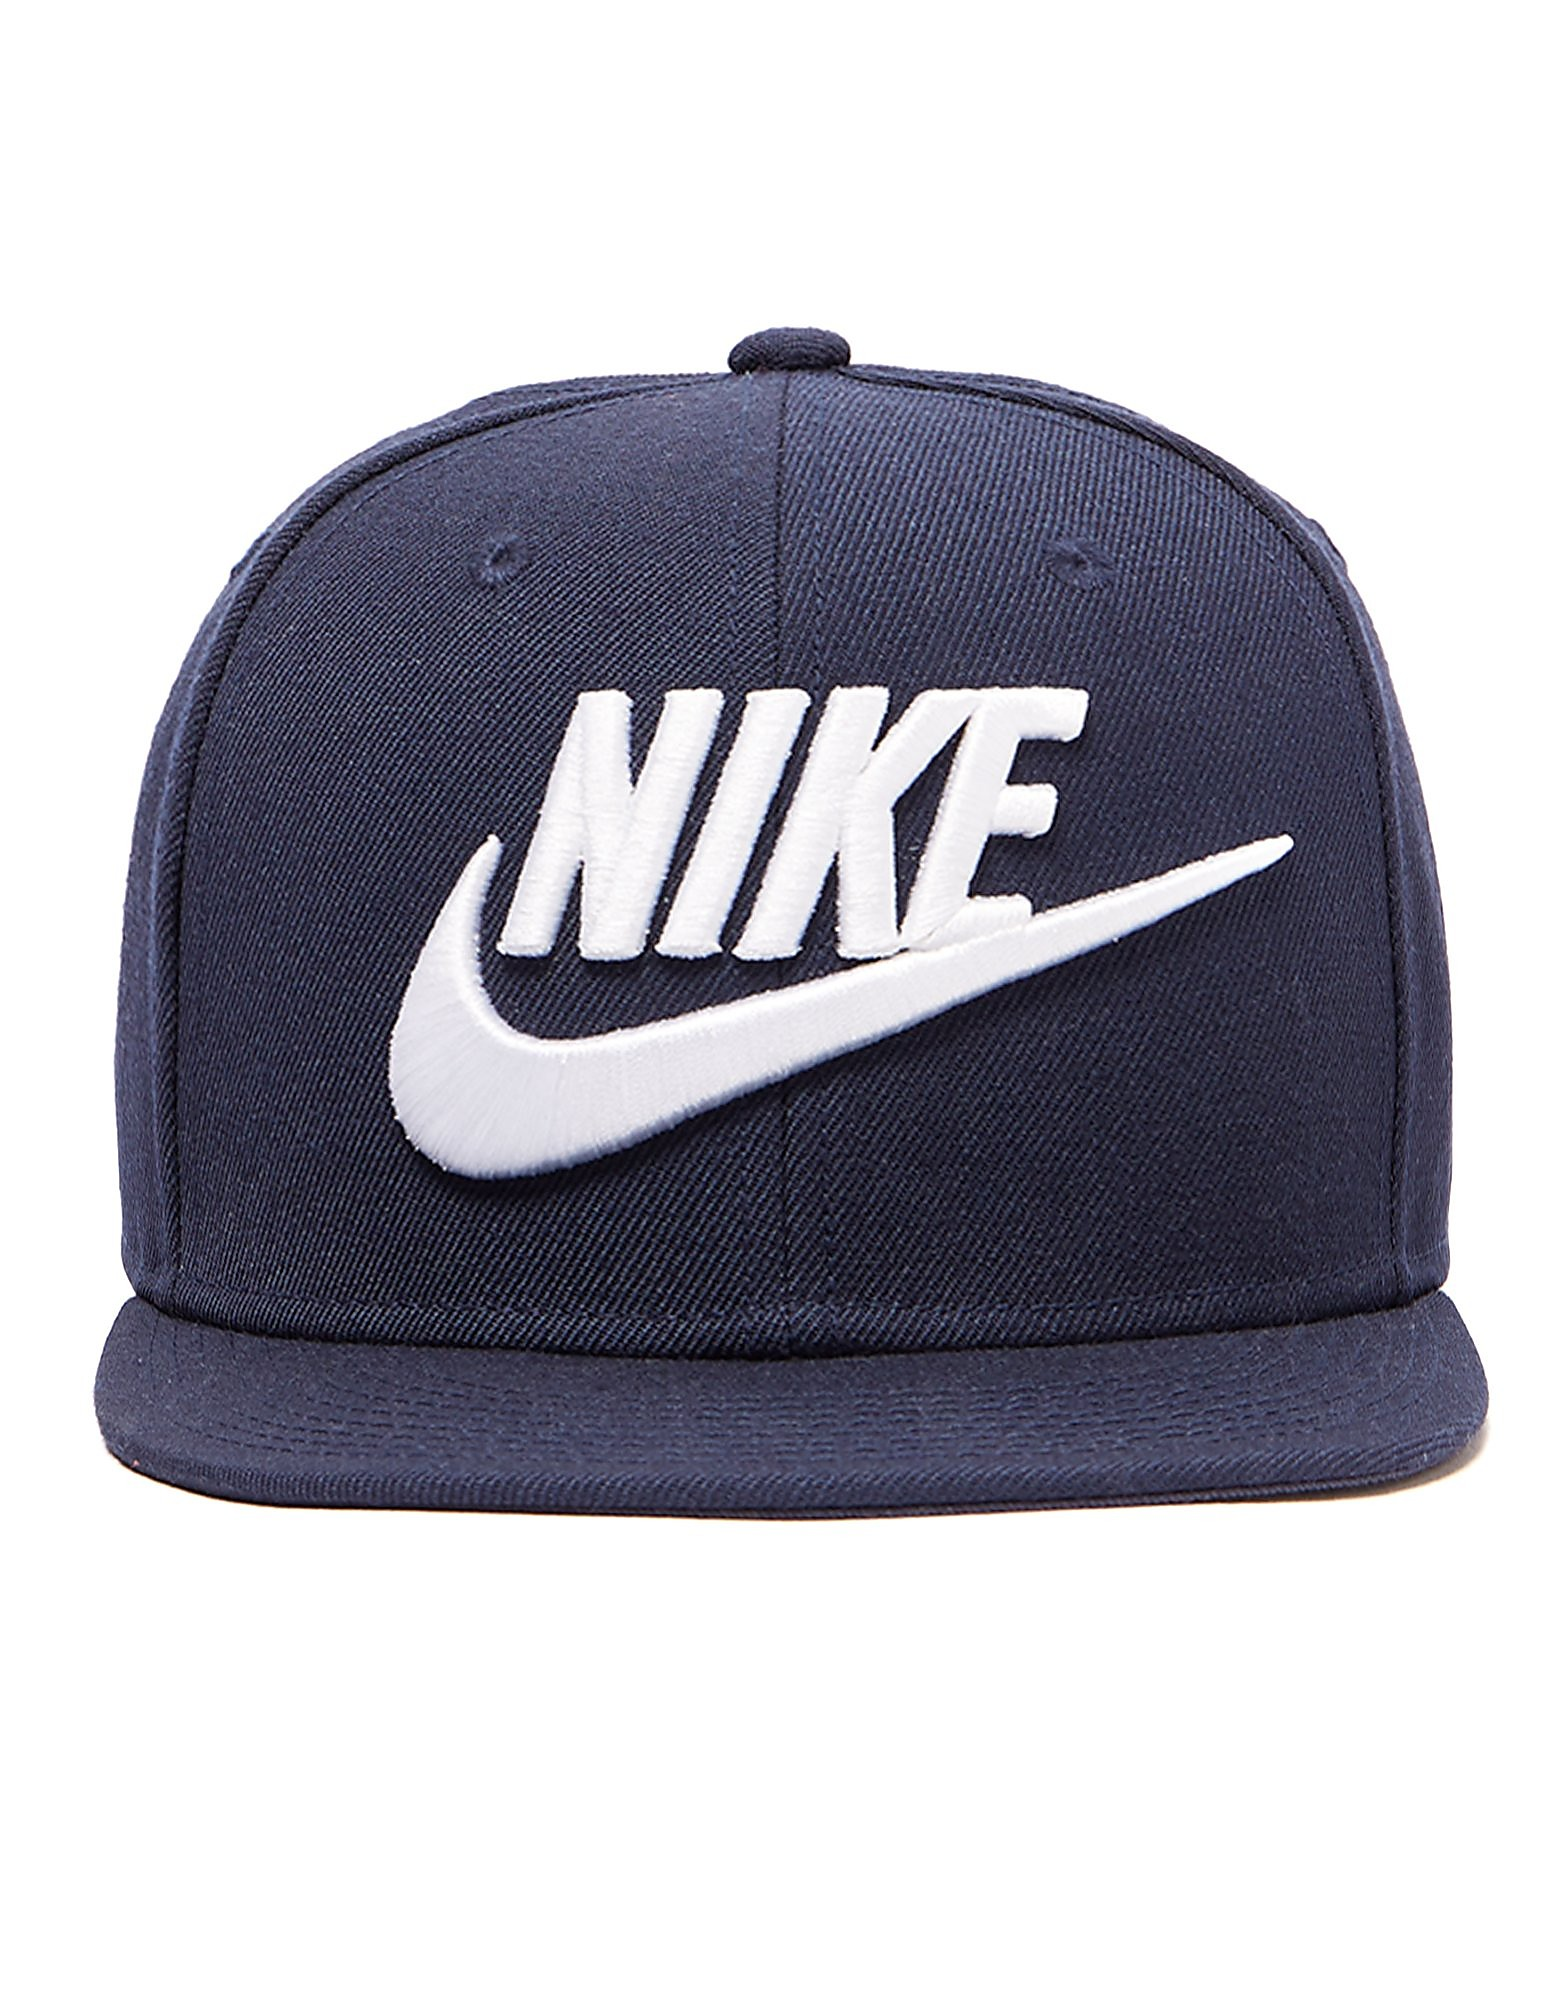 Nike Tribute True Snapback Cap